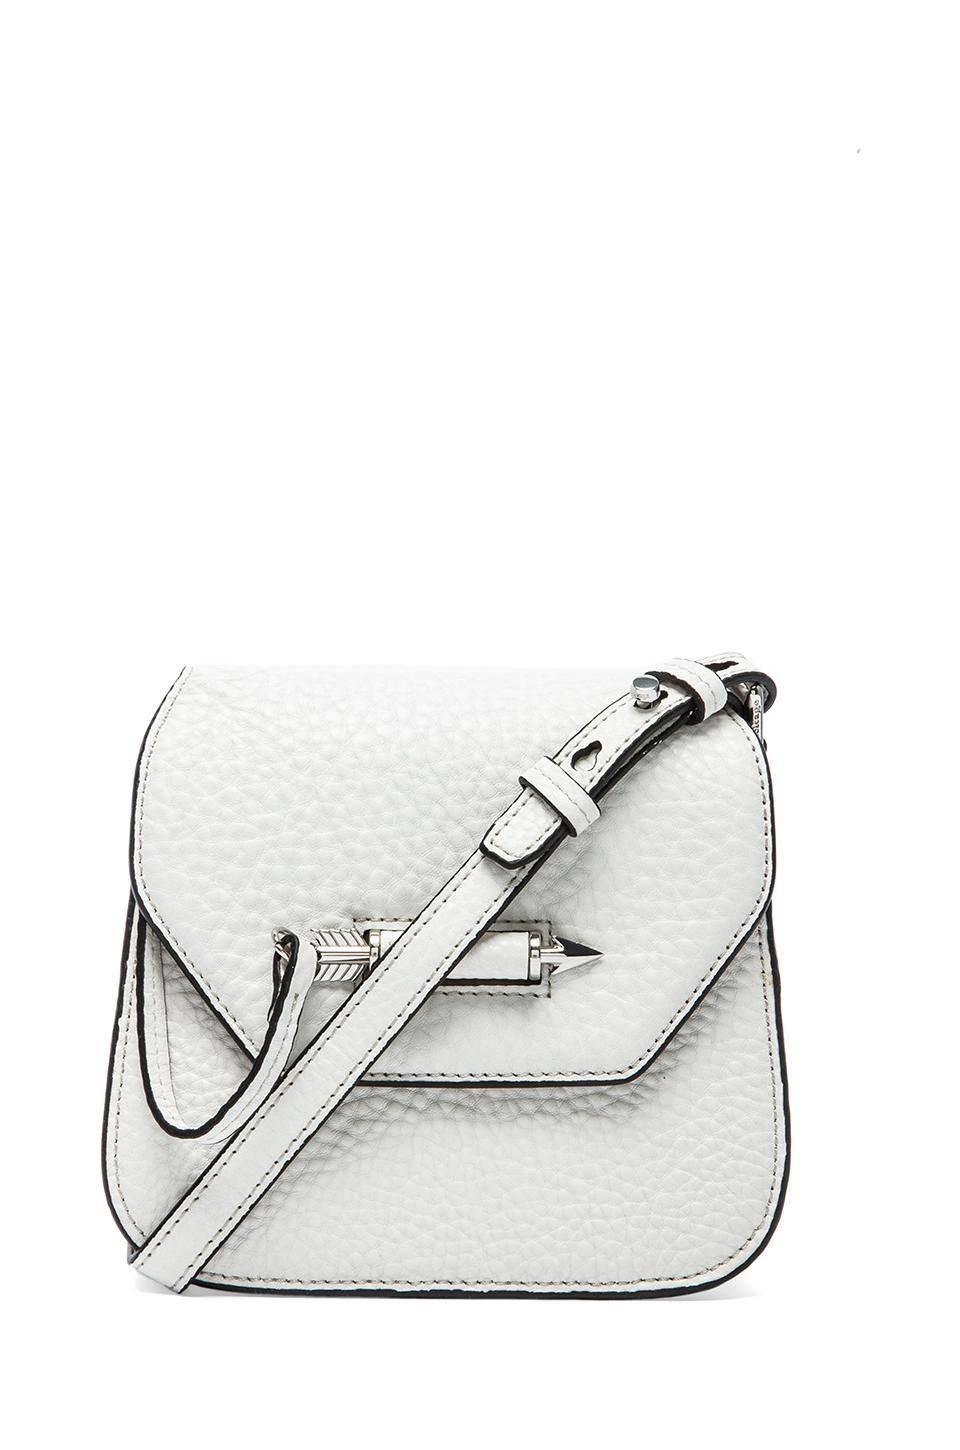 Mackage Novaki Small Crossbody in White